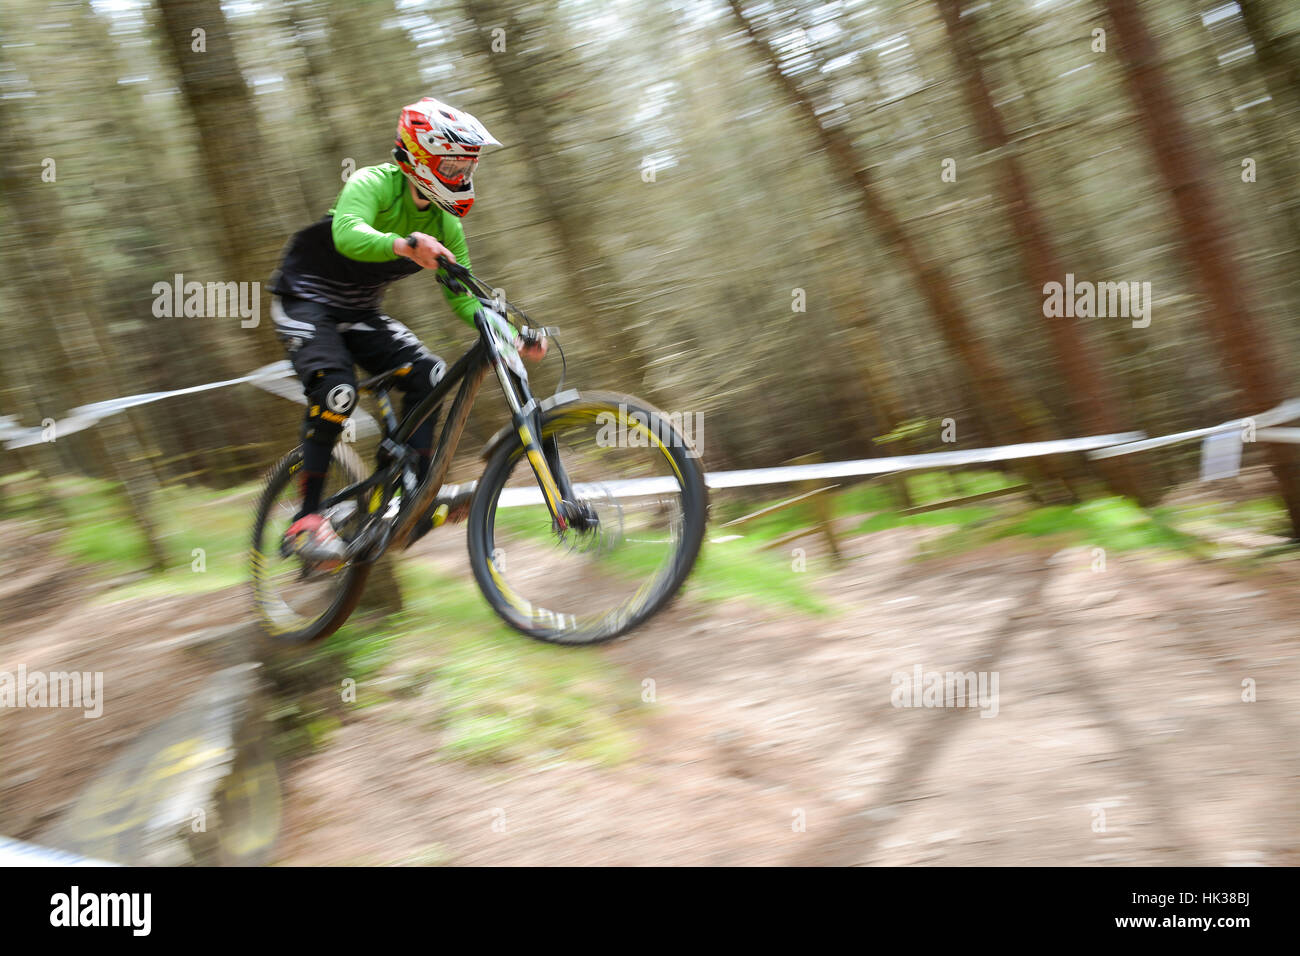 downhill mountain bike rider at Innerleithen, part of the 7stanes mountain biking centre in southern Scotland, UK - Stock Image